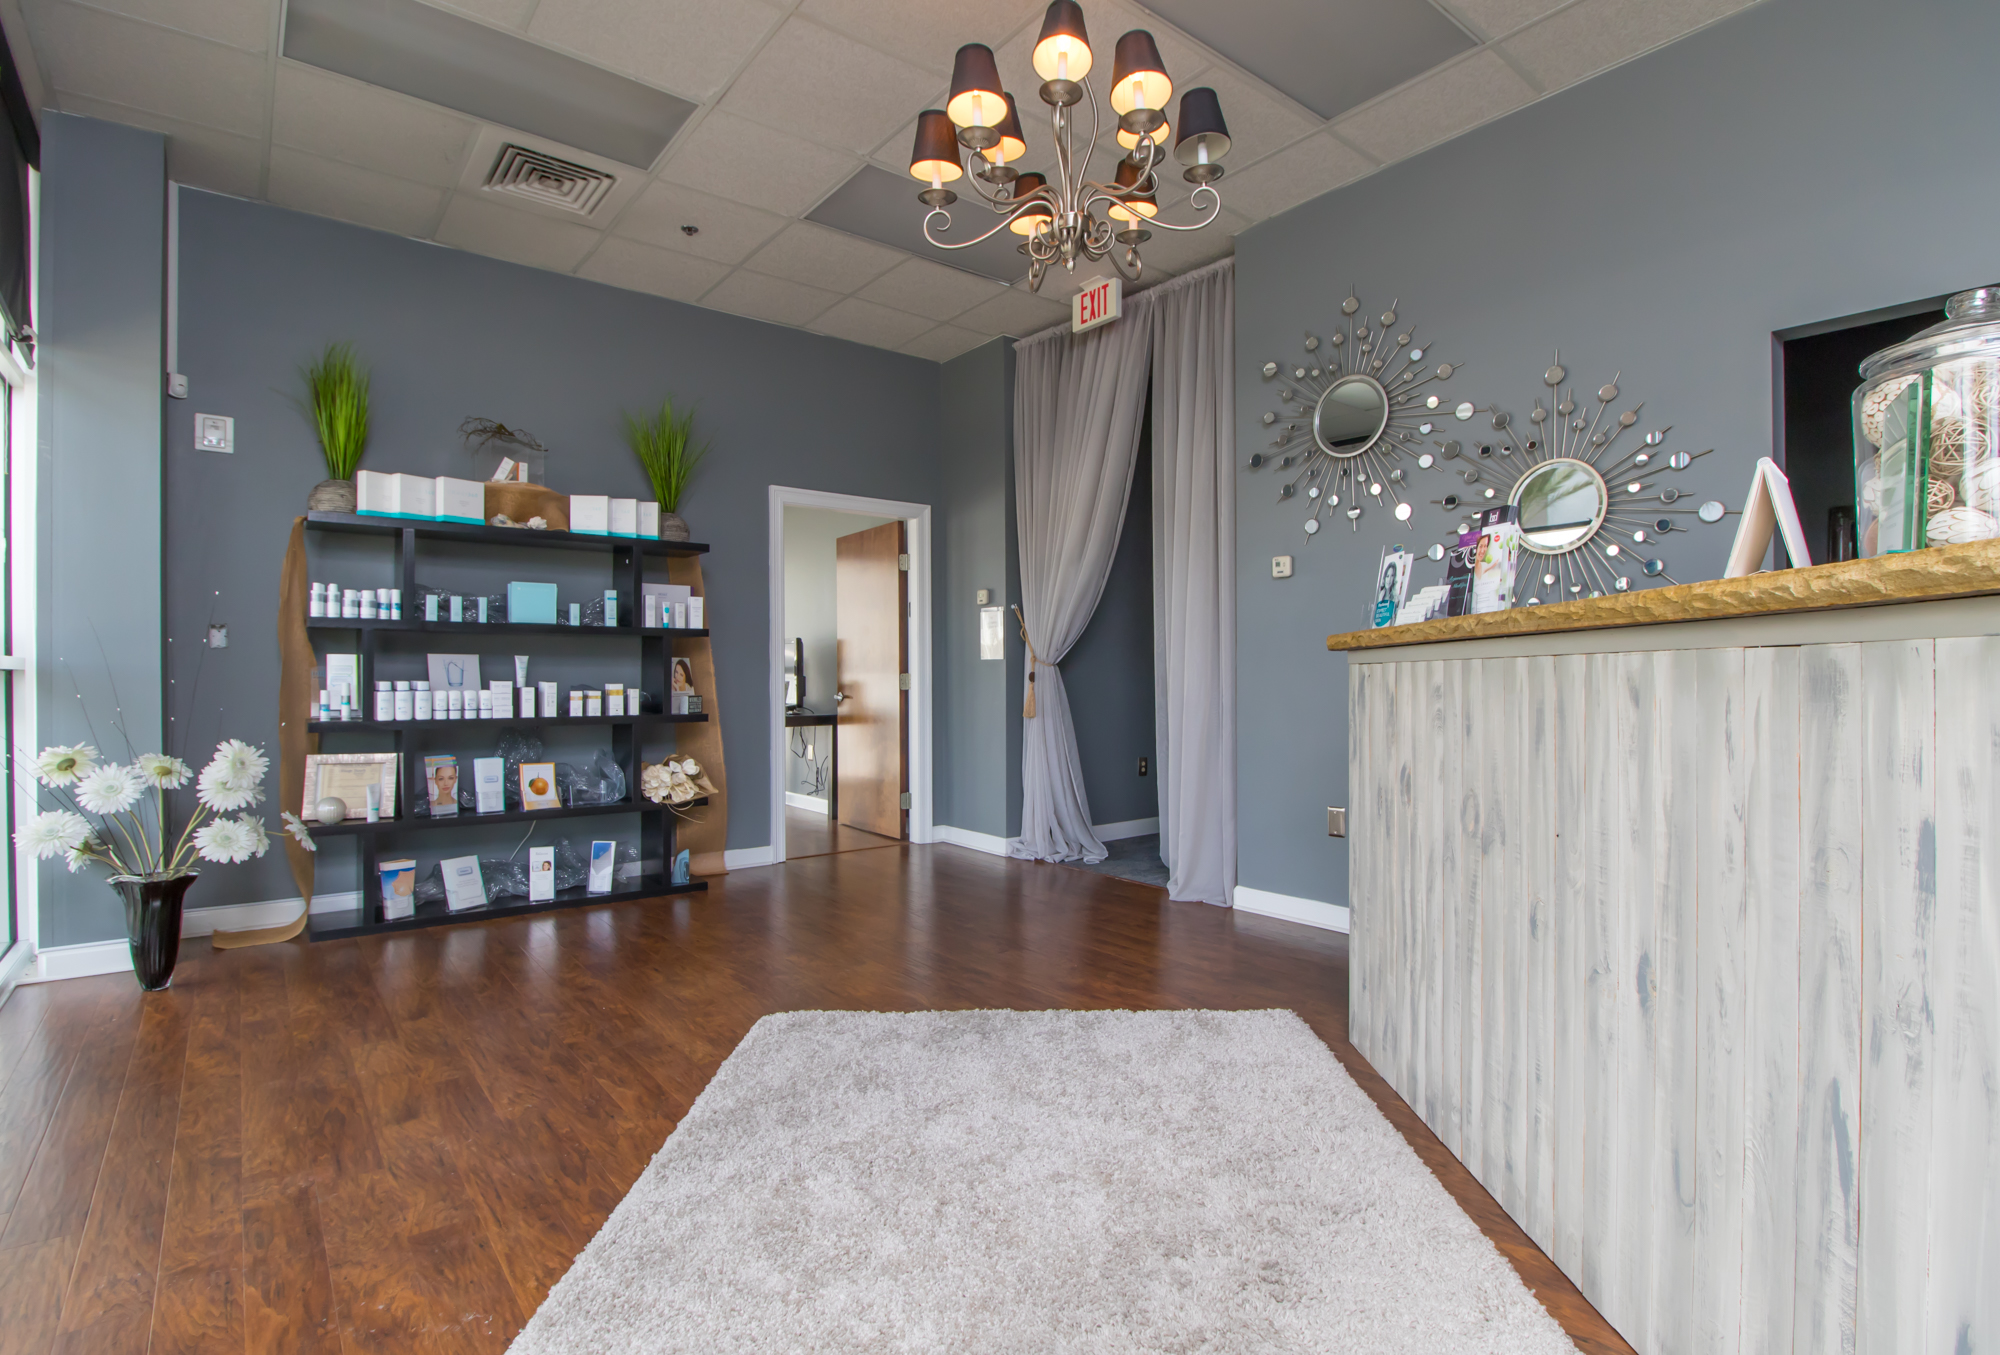 Rejuvination Spa, Orange Beach, Al